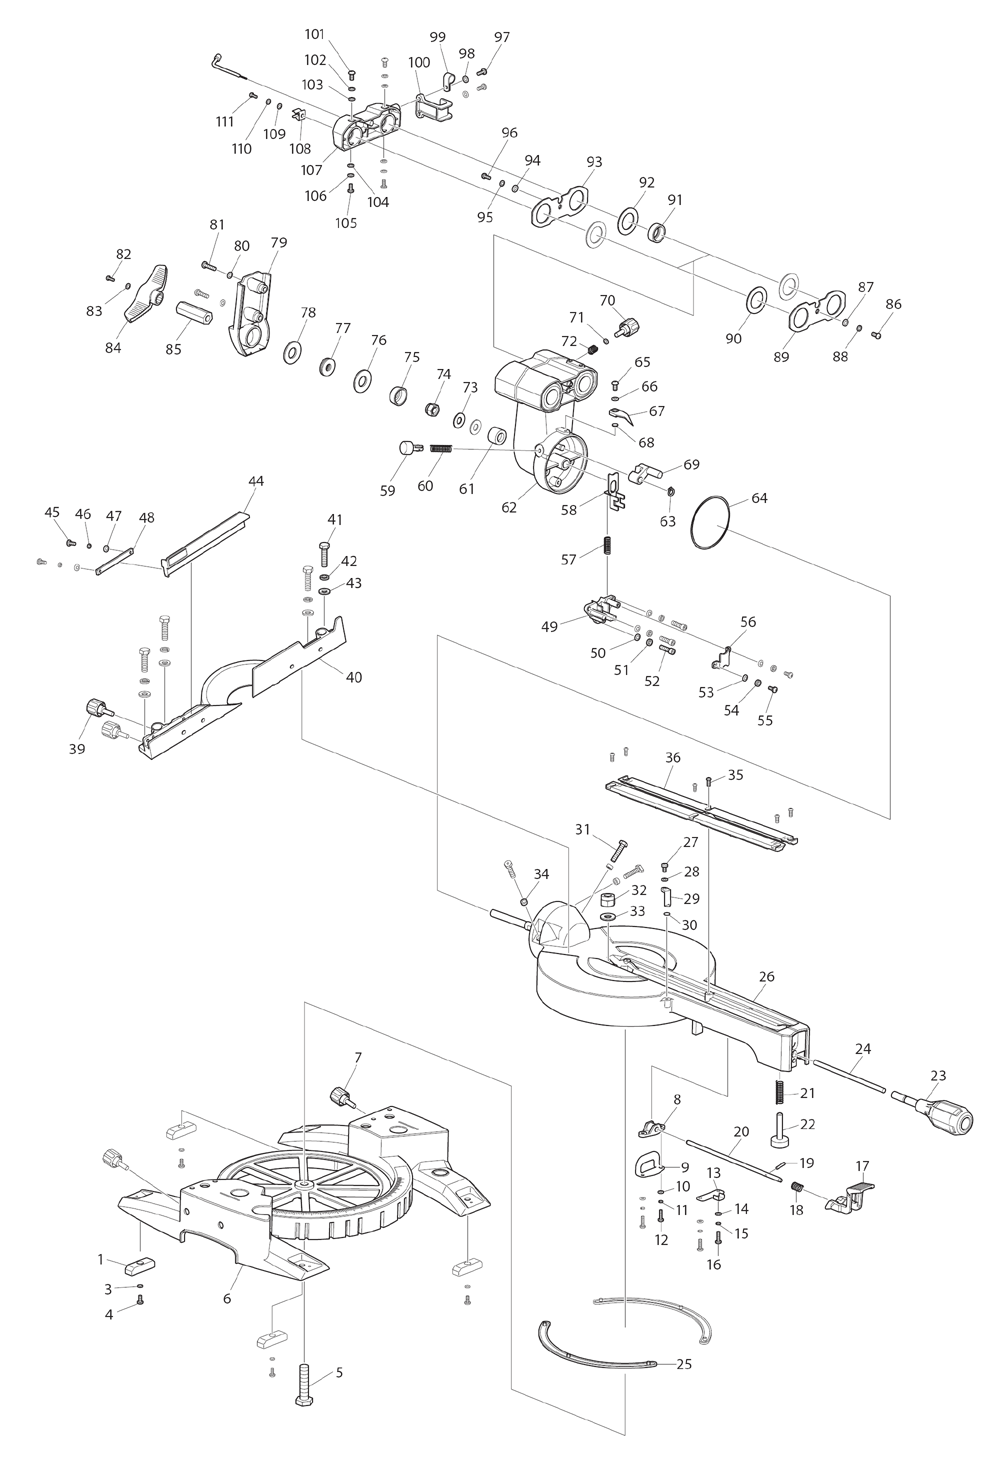 Buy Makita Ls0815f Replacement Tool Parts A Href Wilton 846 List And Diagram Ereplacementpartscom Schematic